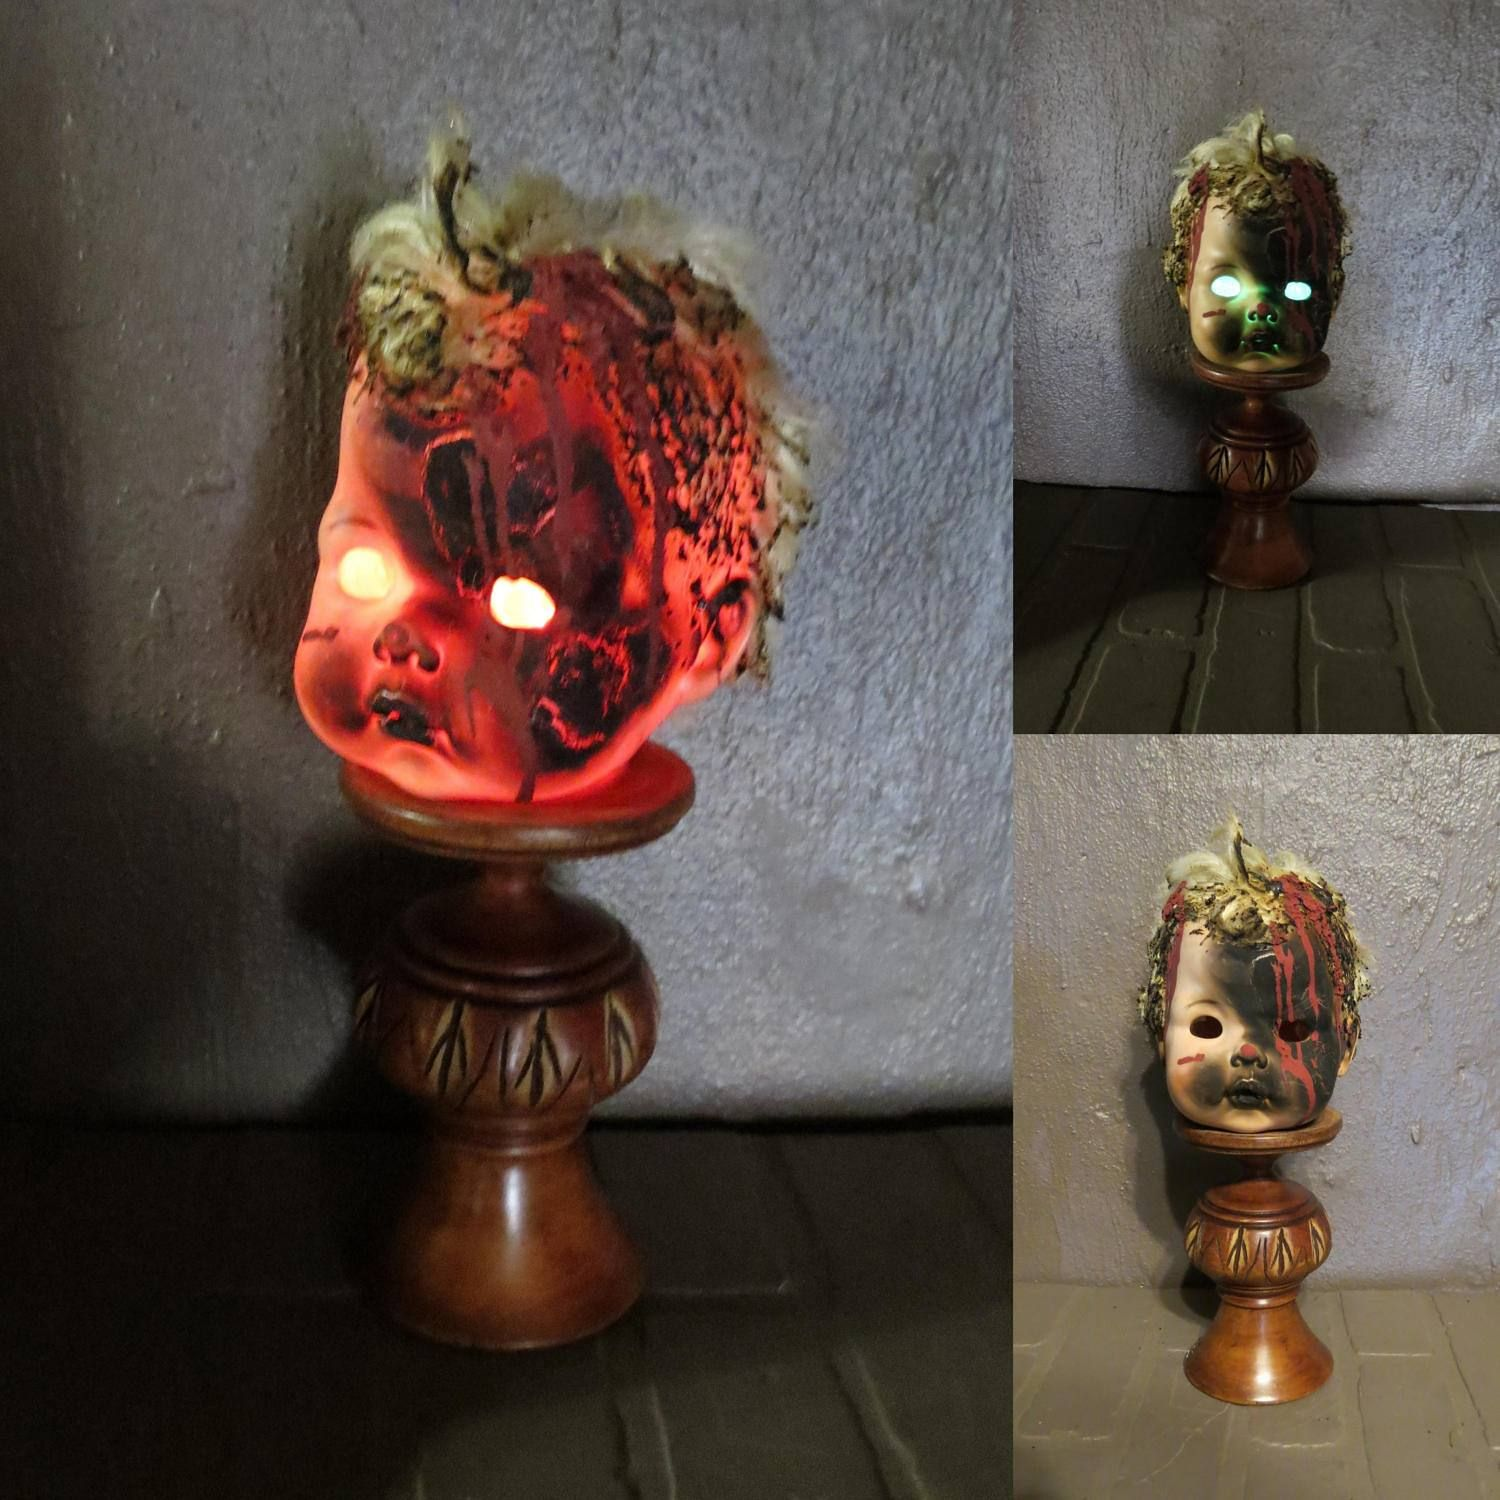 creepy doll head light up halloween decoration battery operated repurposed doll candle holder baby doll - Light Up Halloween Decorations